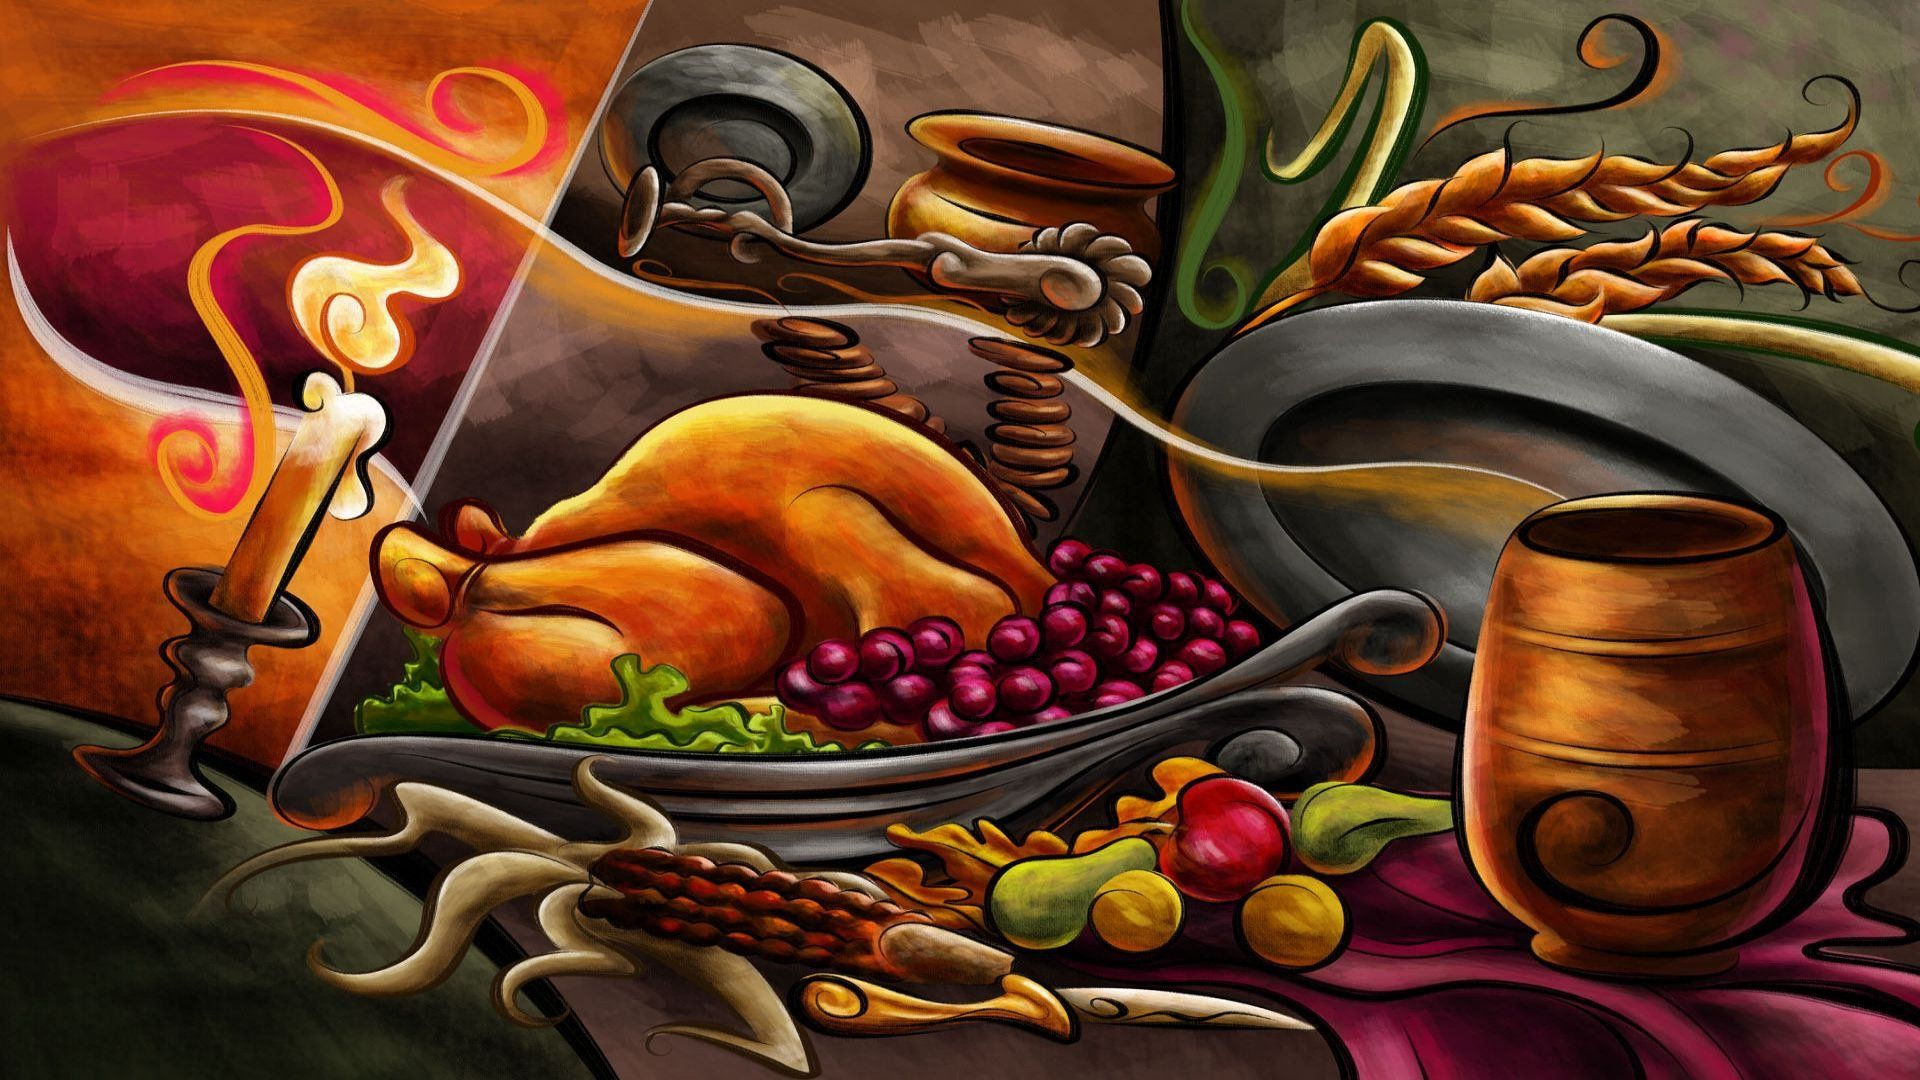 Thanksgiving Wallpapers: 20+ Image